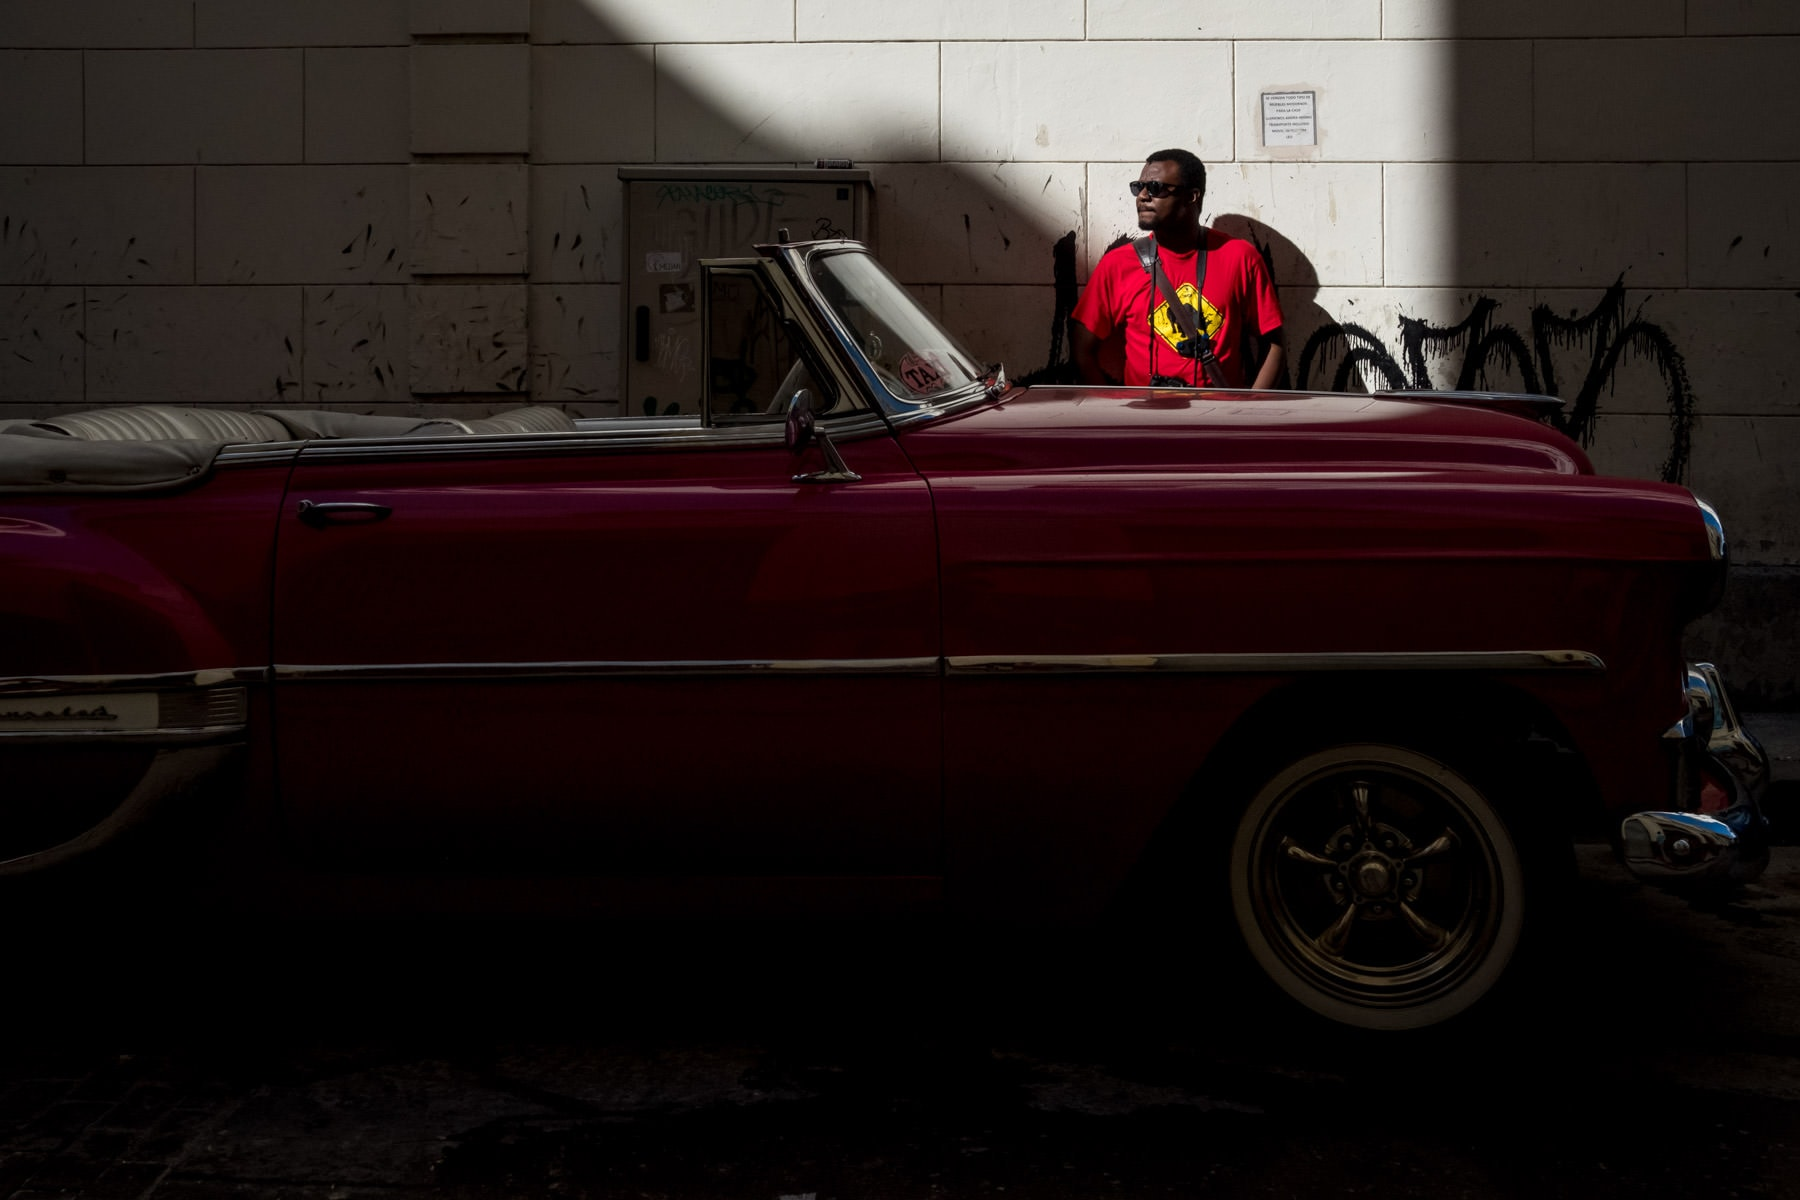 A street photographer standing in sun light in front of a pink Cuban car